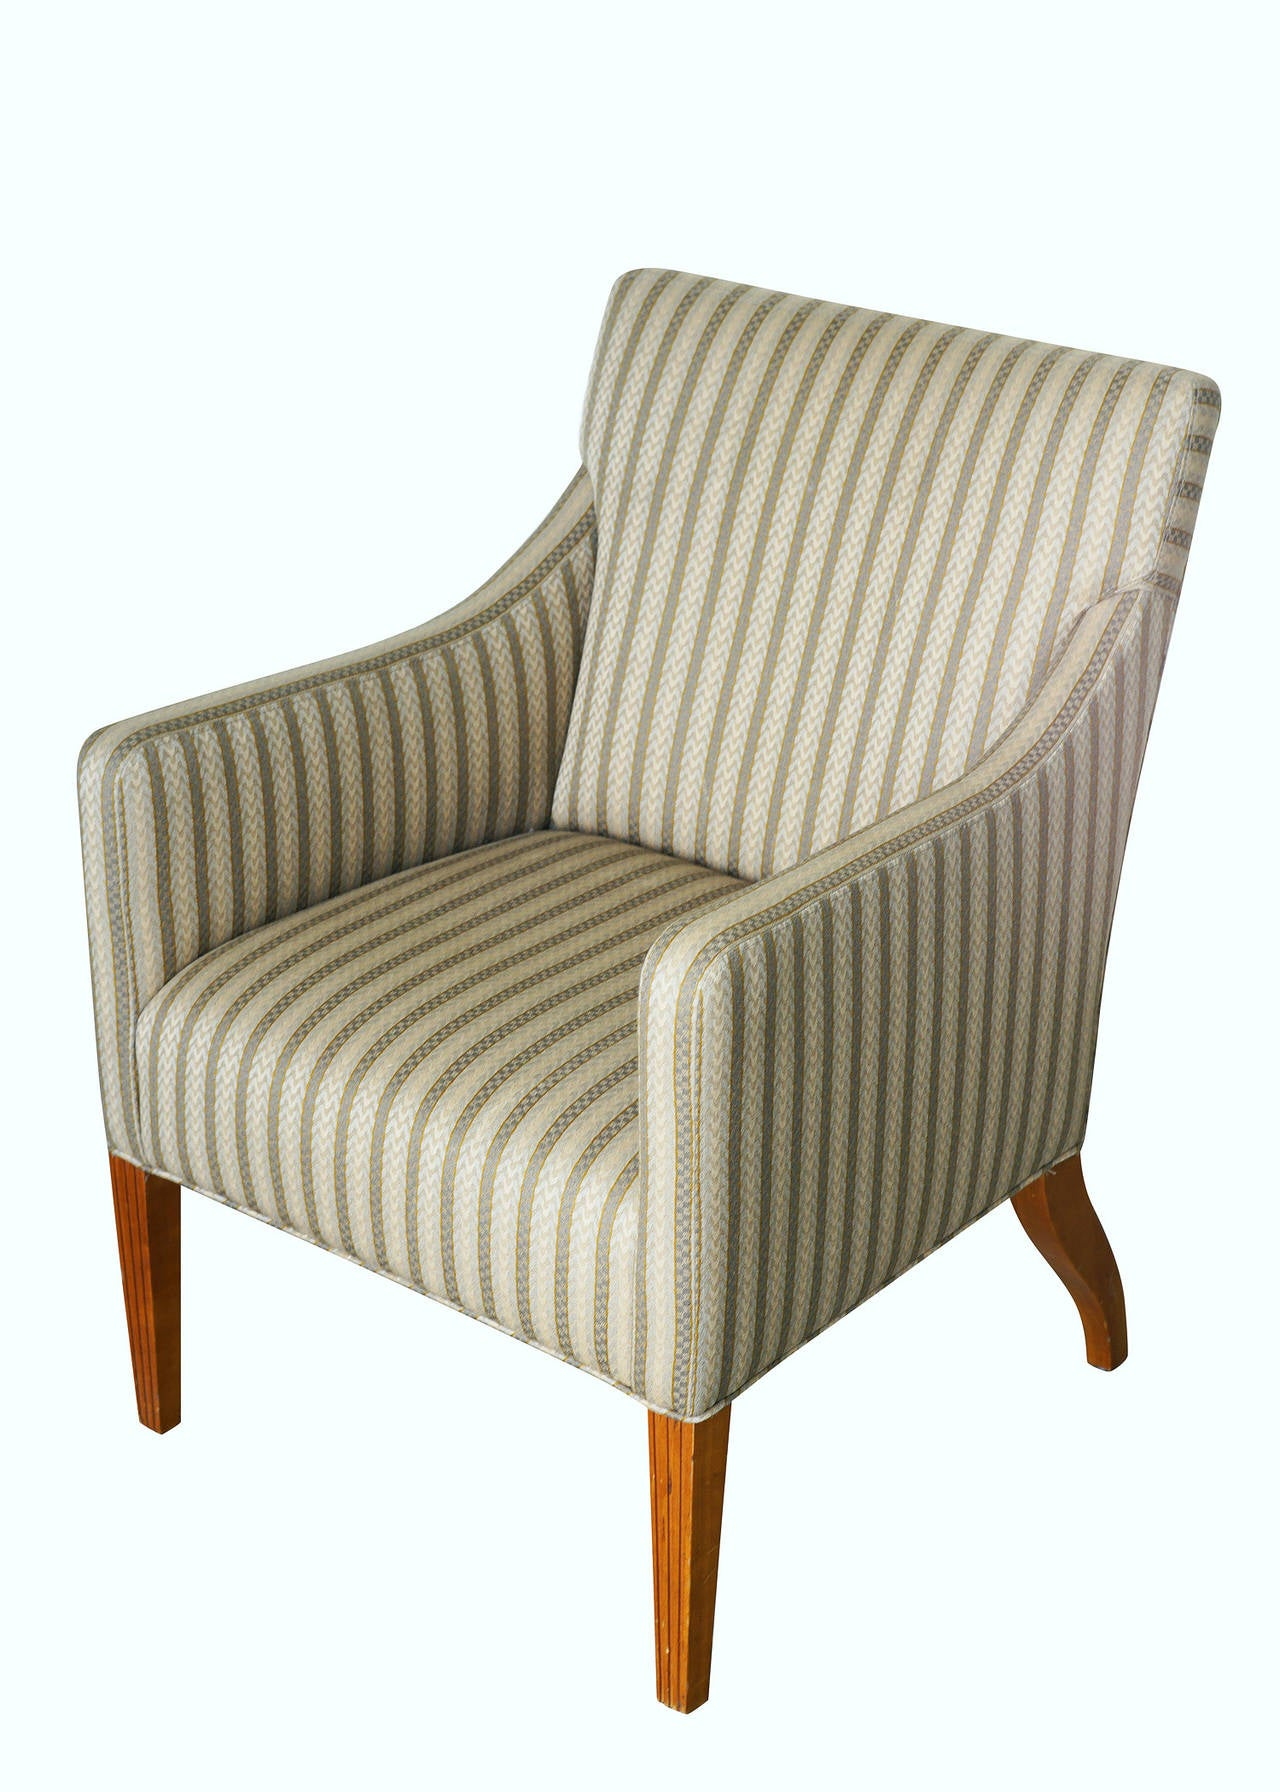 Tommi Parzinger Style Club Chairs For Sale At 1stdibs